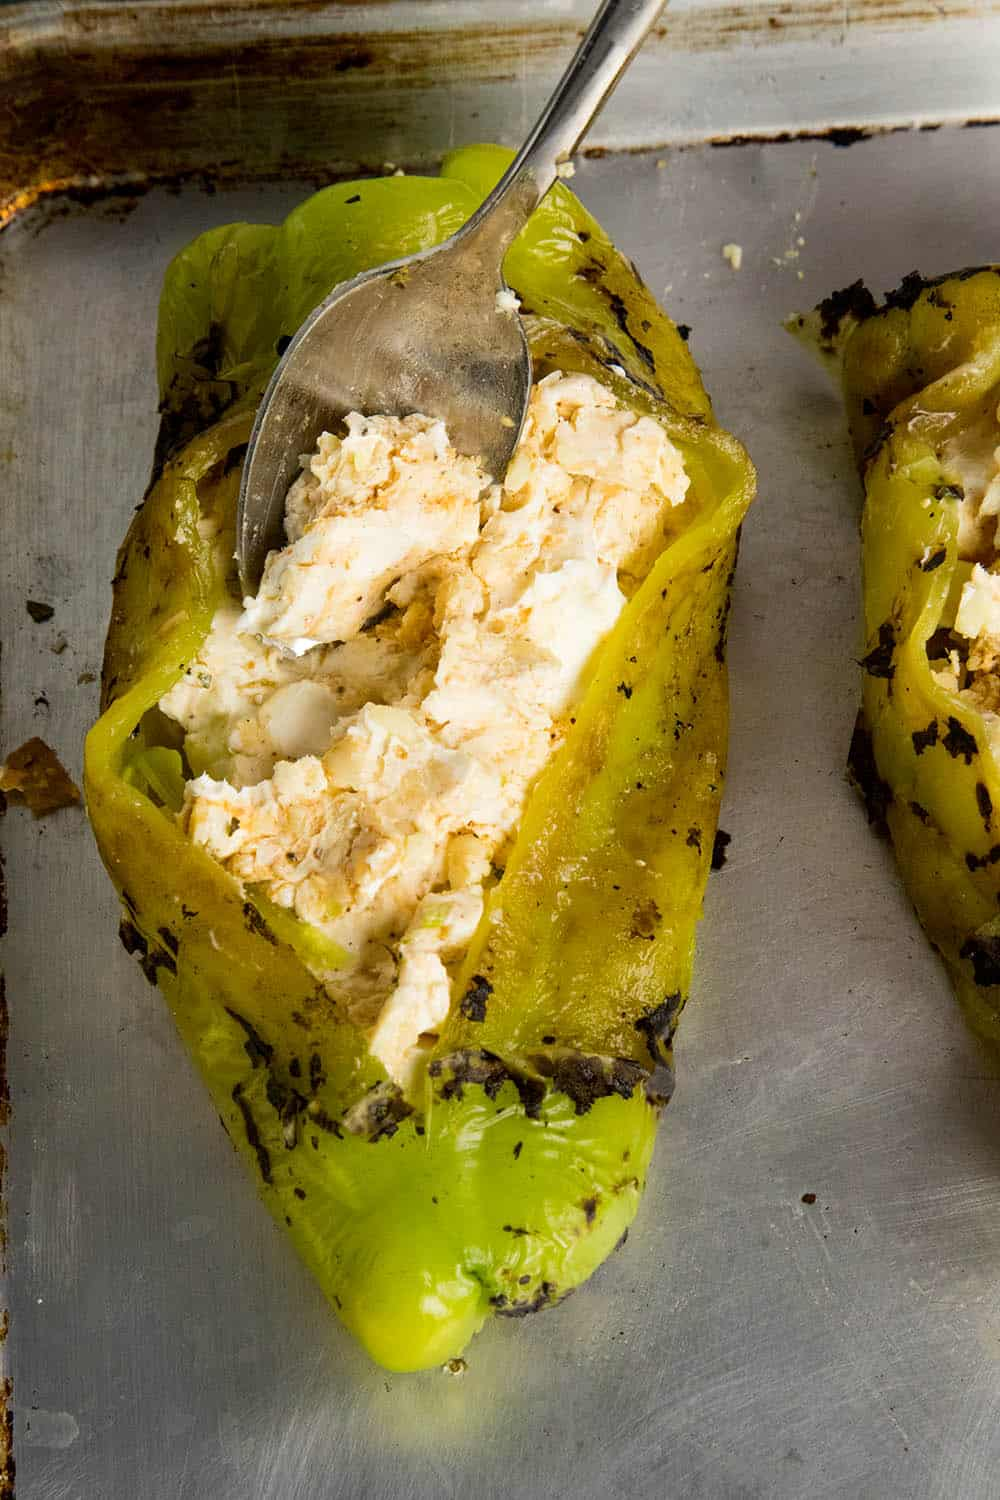 Stuffing the Anaheim peppers with Cajun cream cheese before baking